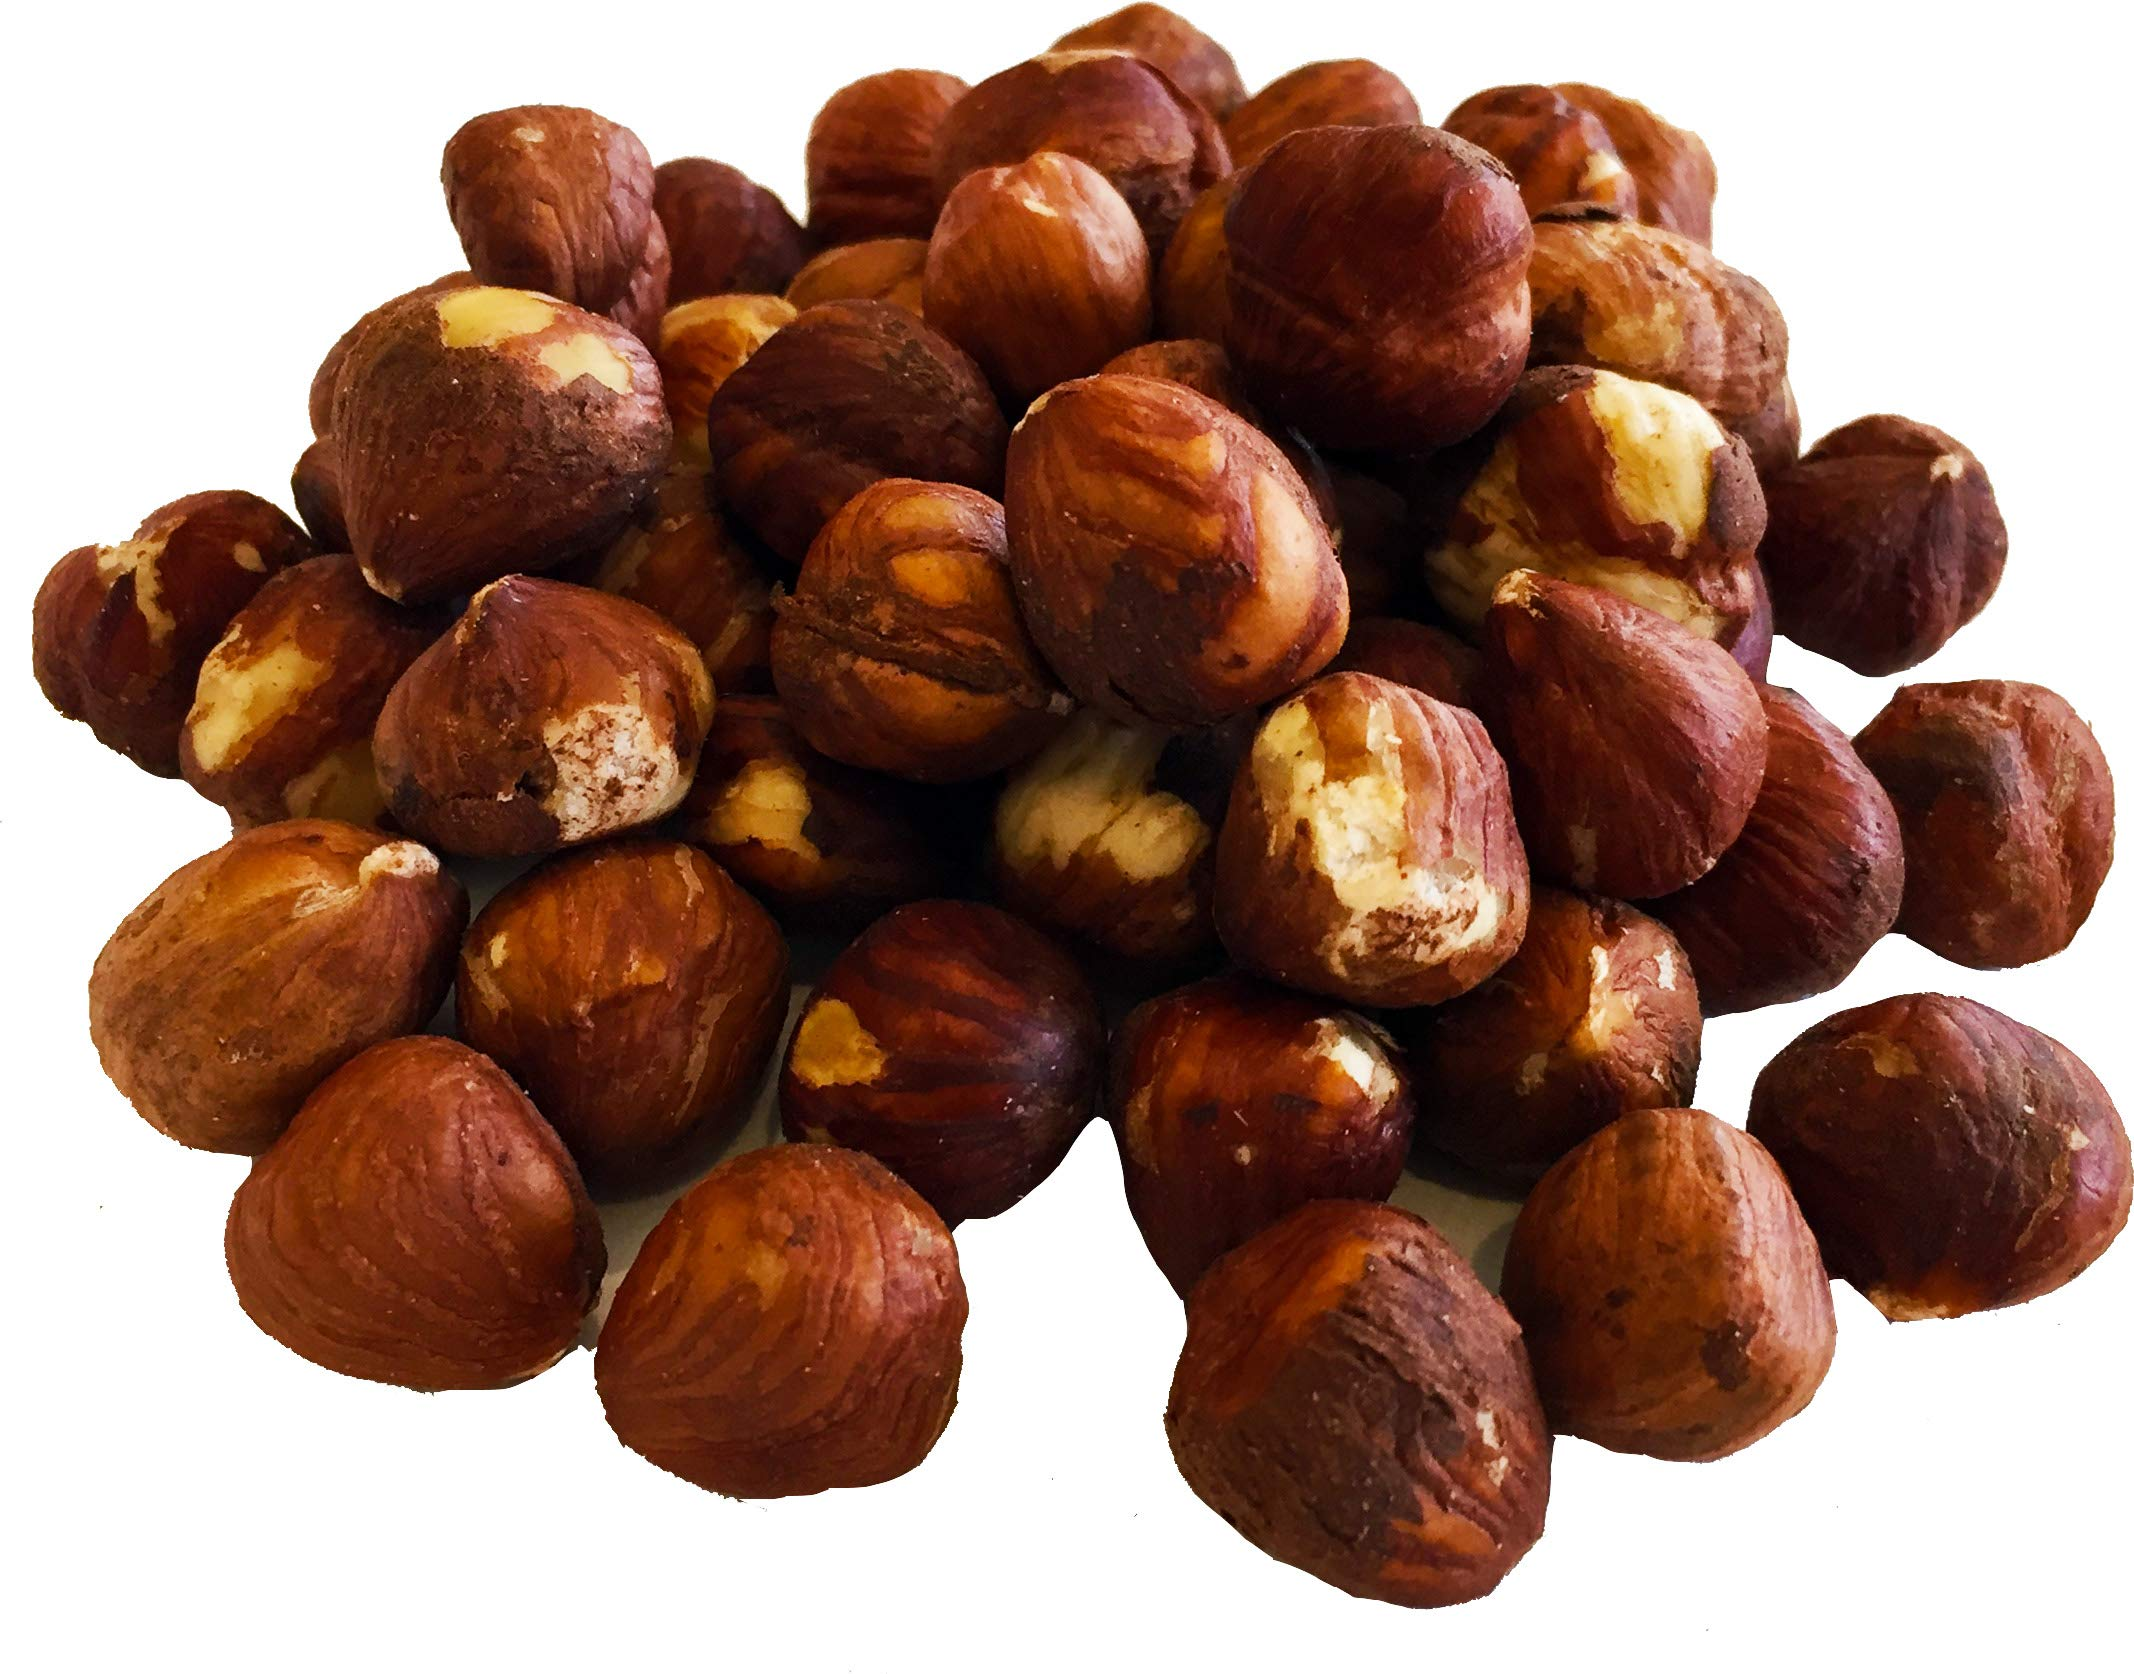 Raw Hazelnuts 24 oz 1.5 LB (Whole, Unsalted, No Shell, All Natural, Non-GMO, Kosher, In Resealable Bag, Nutrient Dense Low Carb High Fat Snack) by BetterFoods